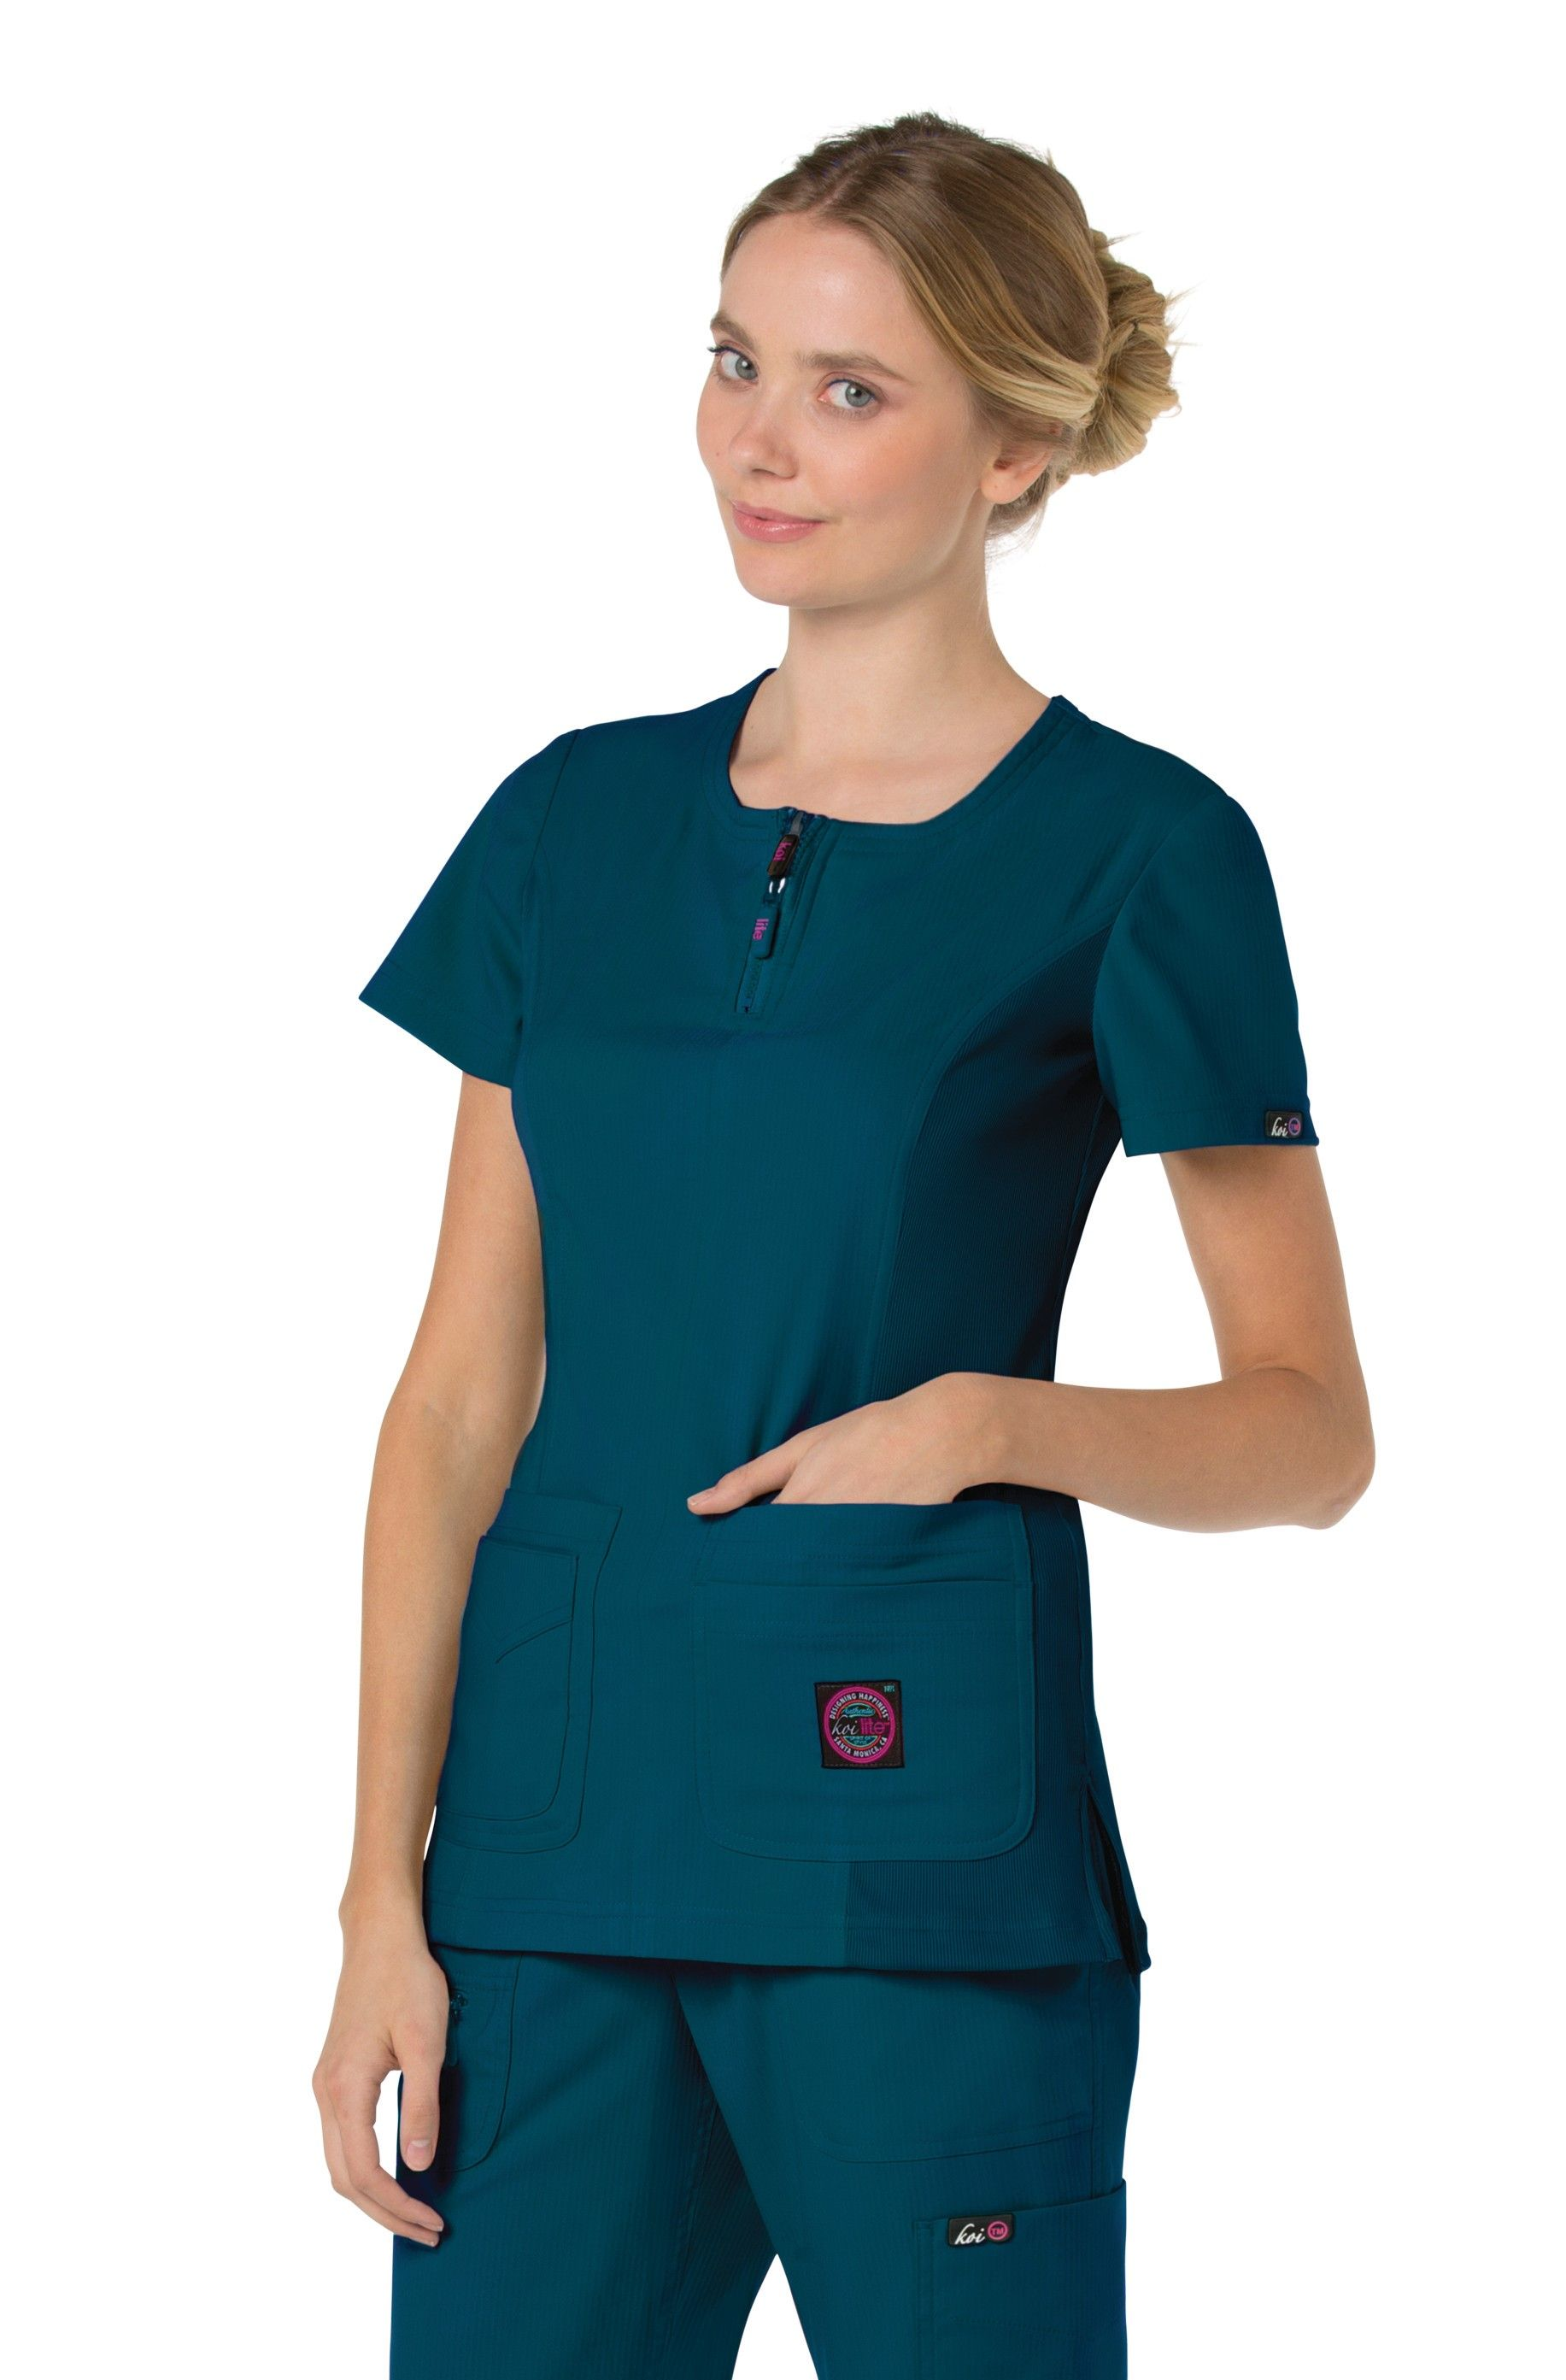 2644fdadf67 Koi Lite Serenity Scrub Top in Caribbean Blue. | 2017 Arrivals in ...